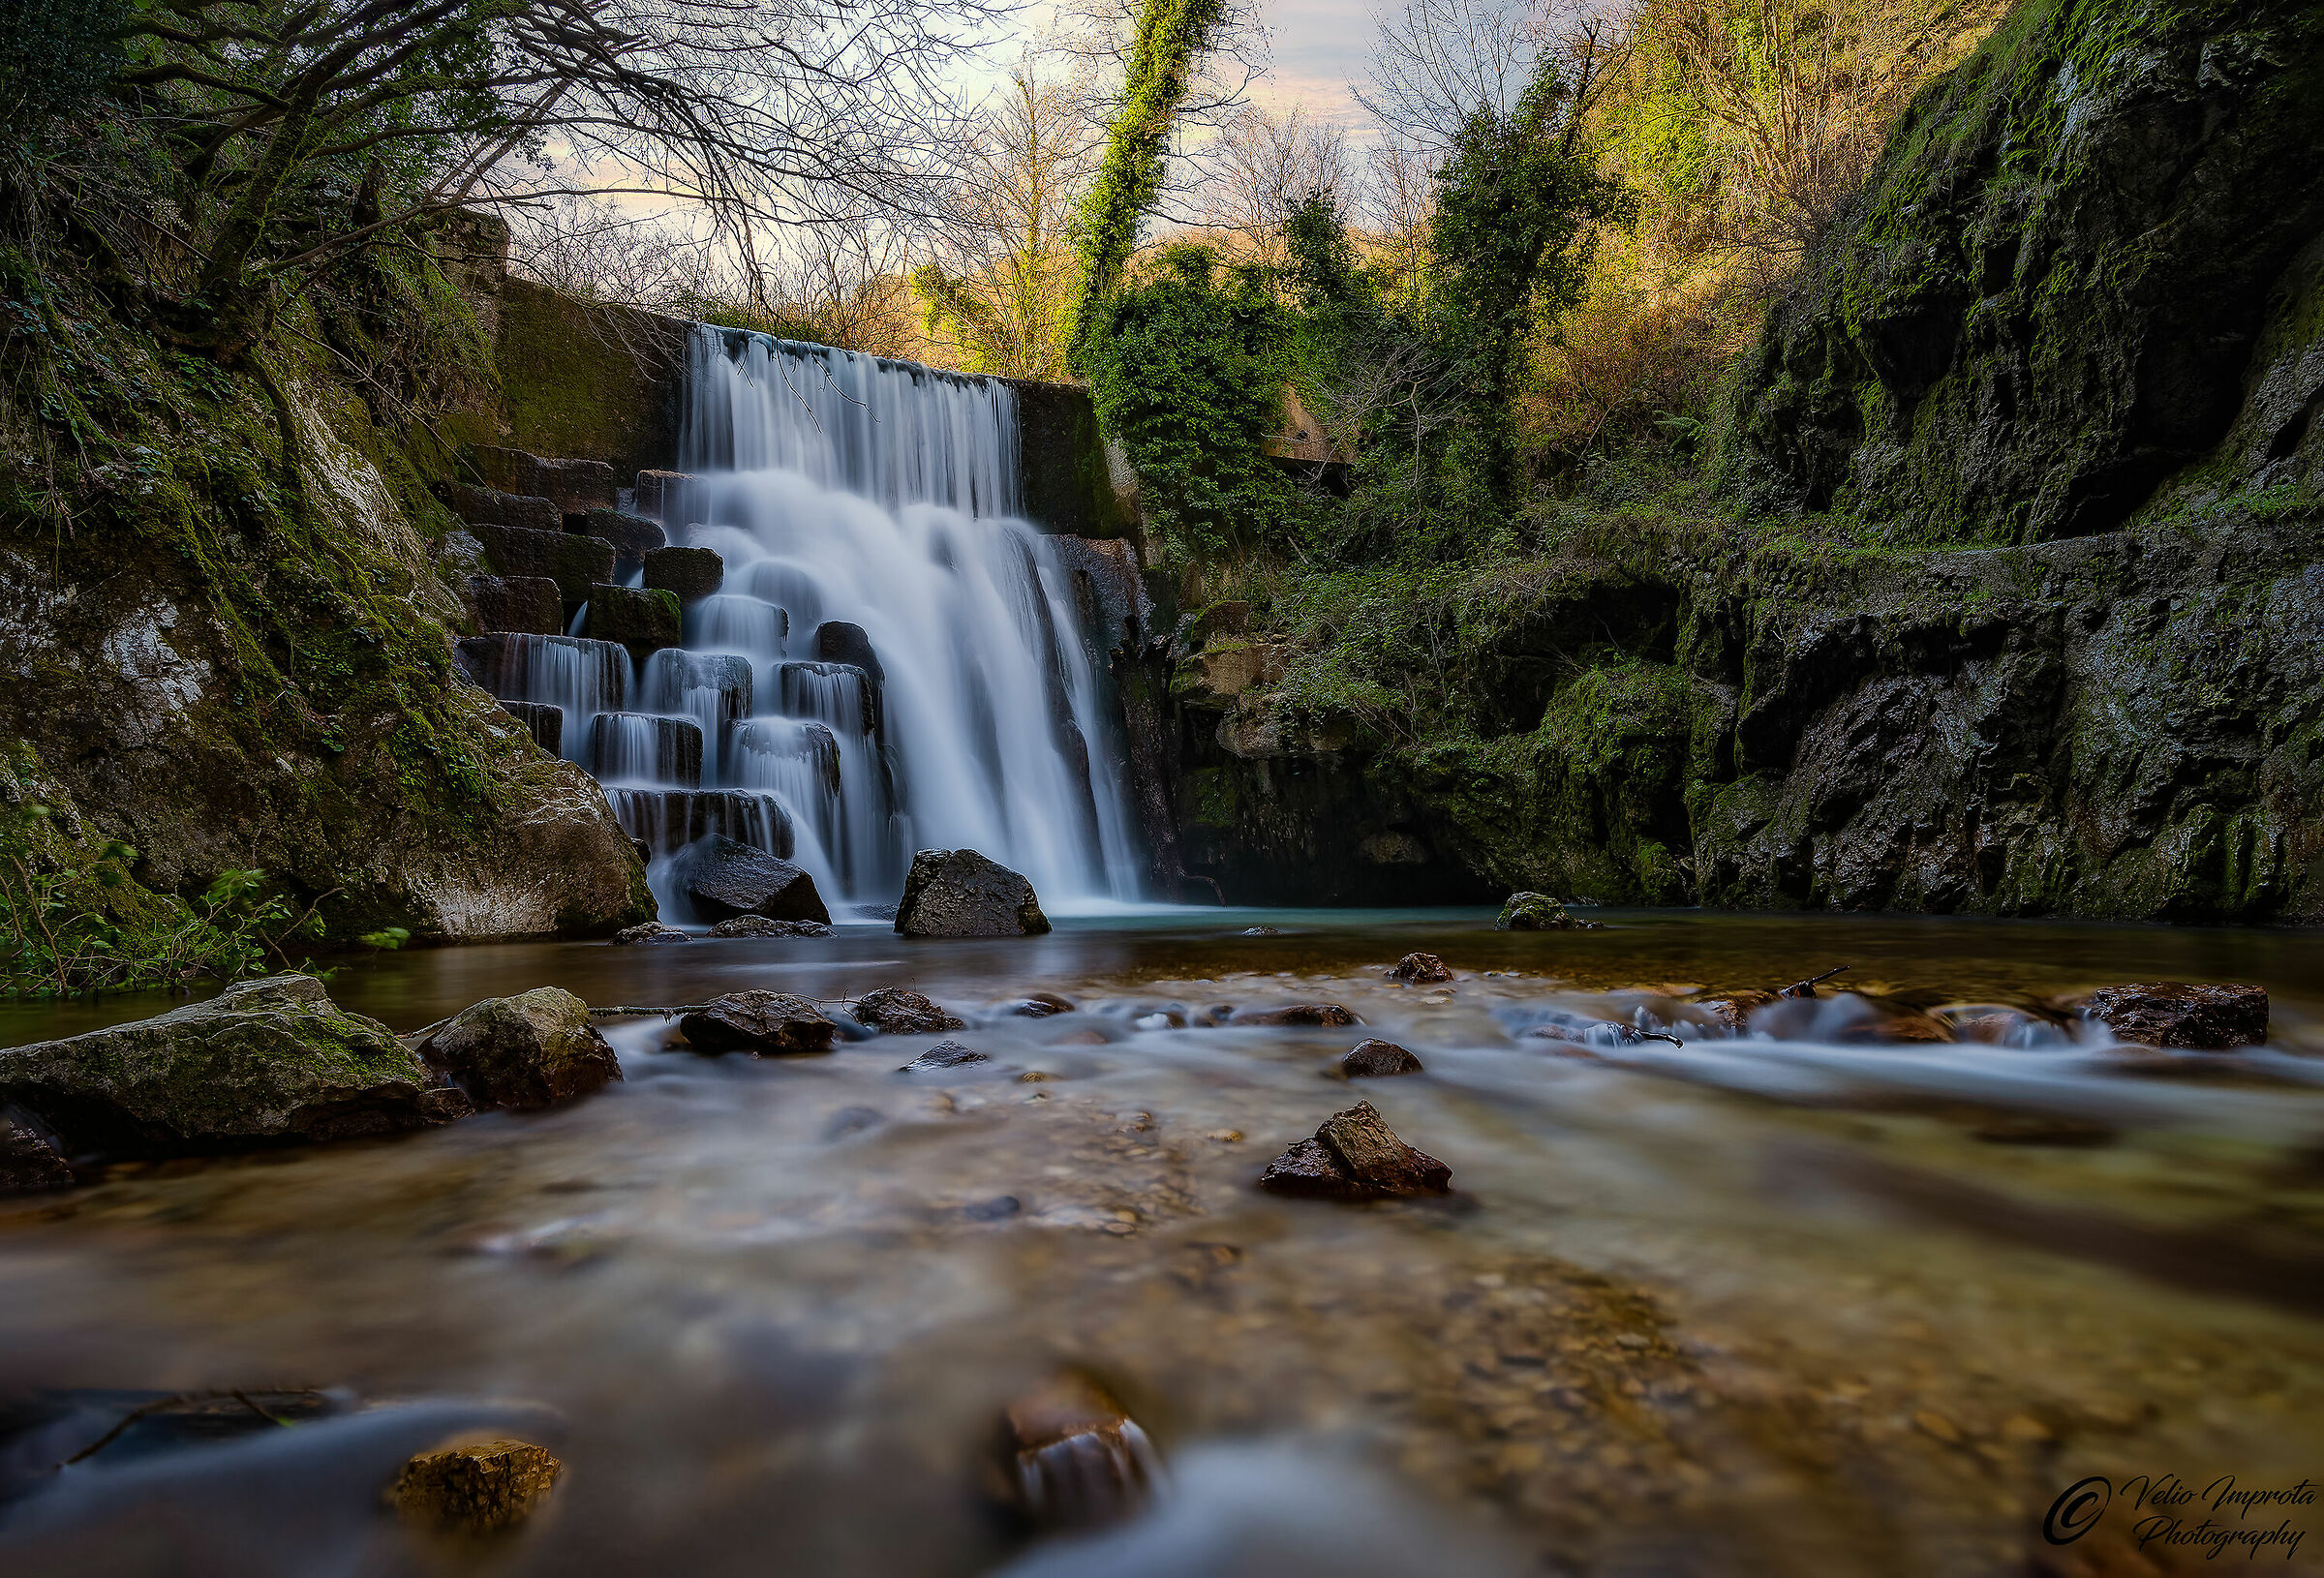 The Madonella Waterfall...